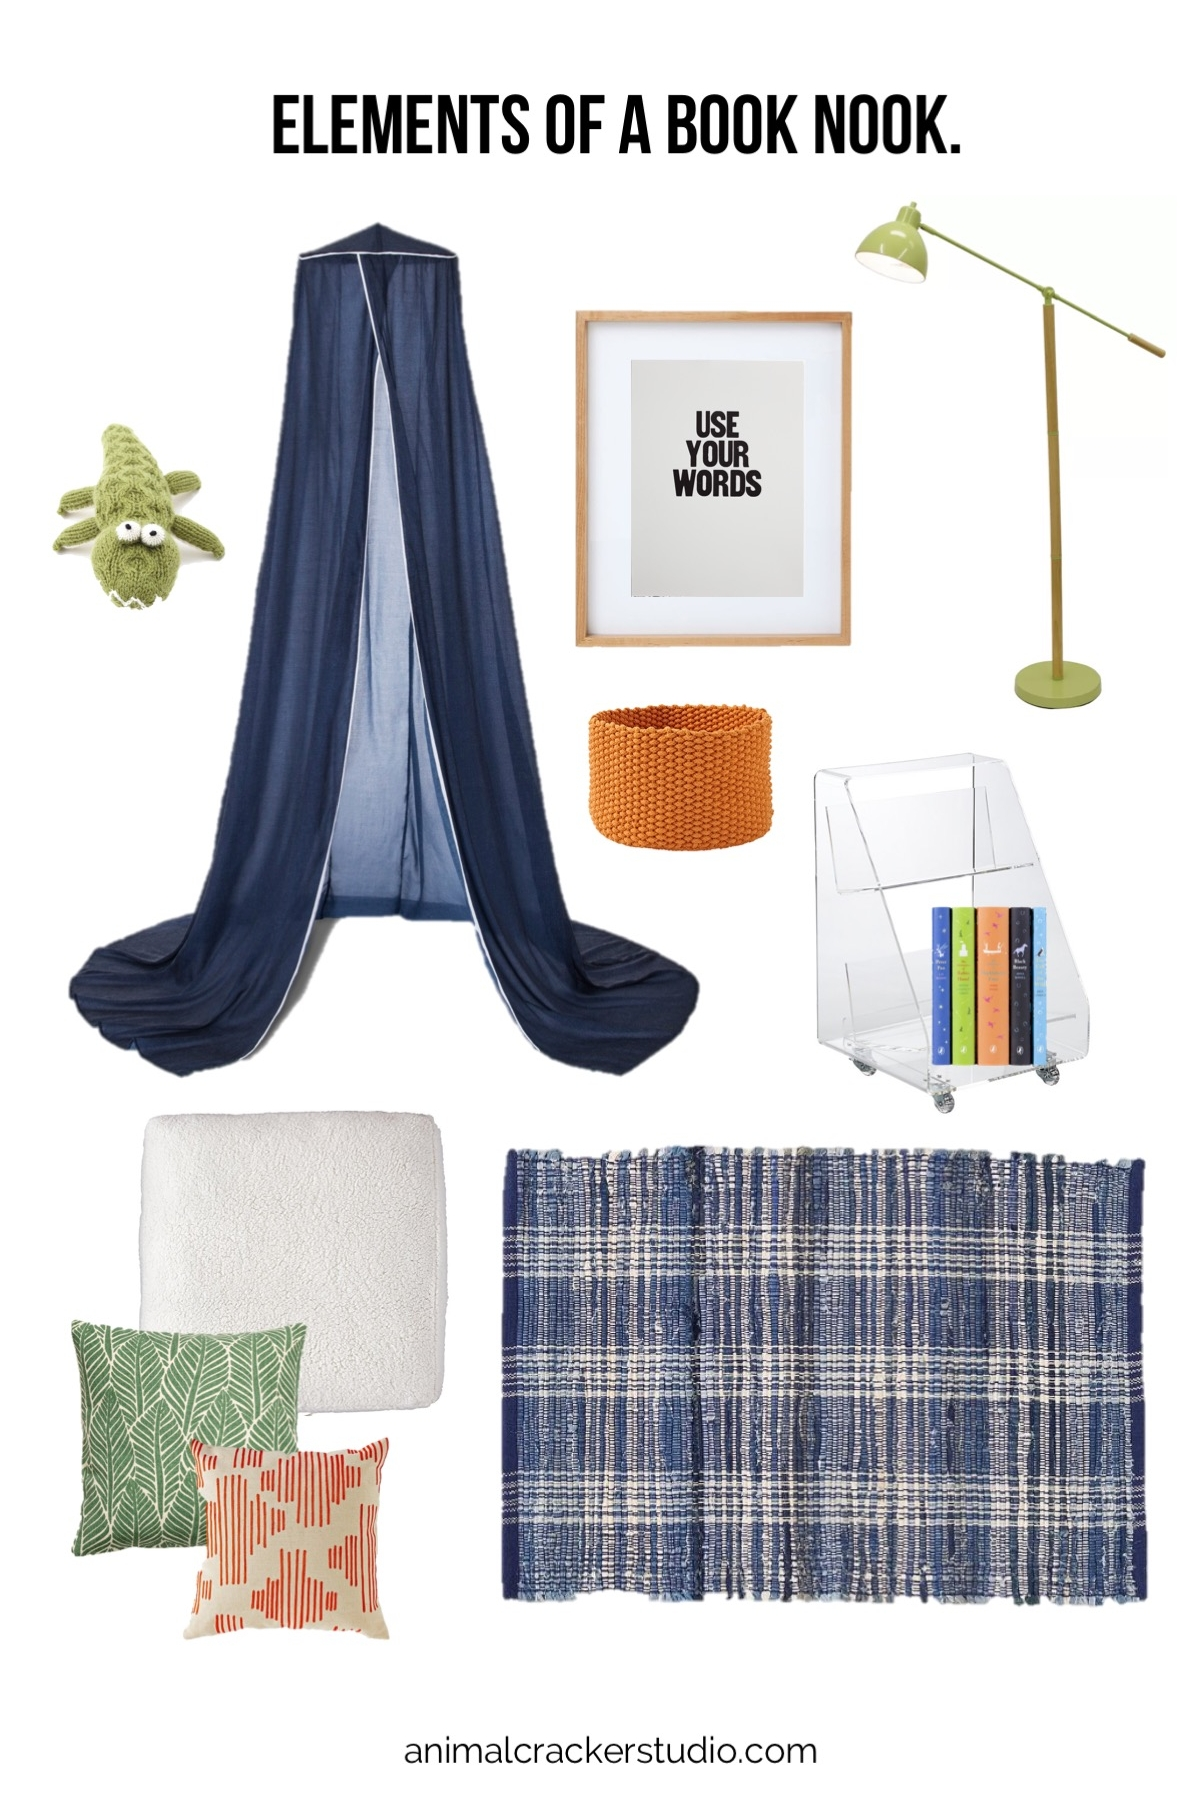 Sources (a couple of these links are affiliate links and I thank you in advance for using them!):  alligator ,  canopy ,  use your words ,  frame , lamp,  book cart ,  set of classics ,  soft basket ,  rug ,  faux shearling floor cushion ,  green pillow ,  red mod pillow .